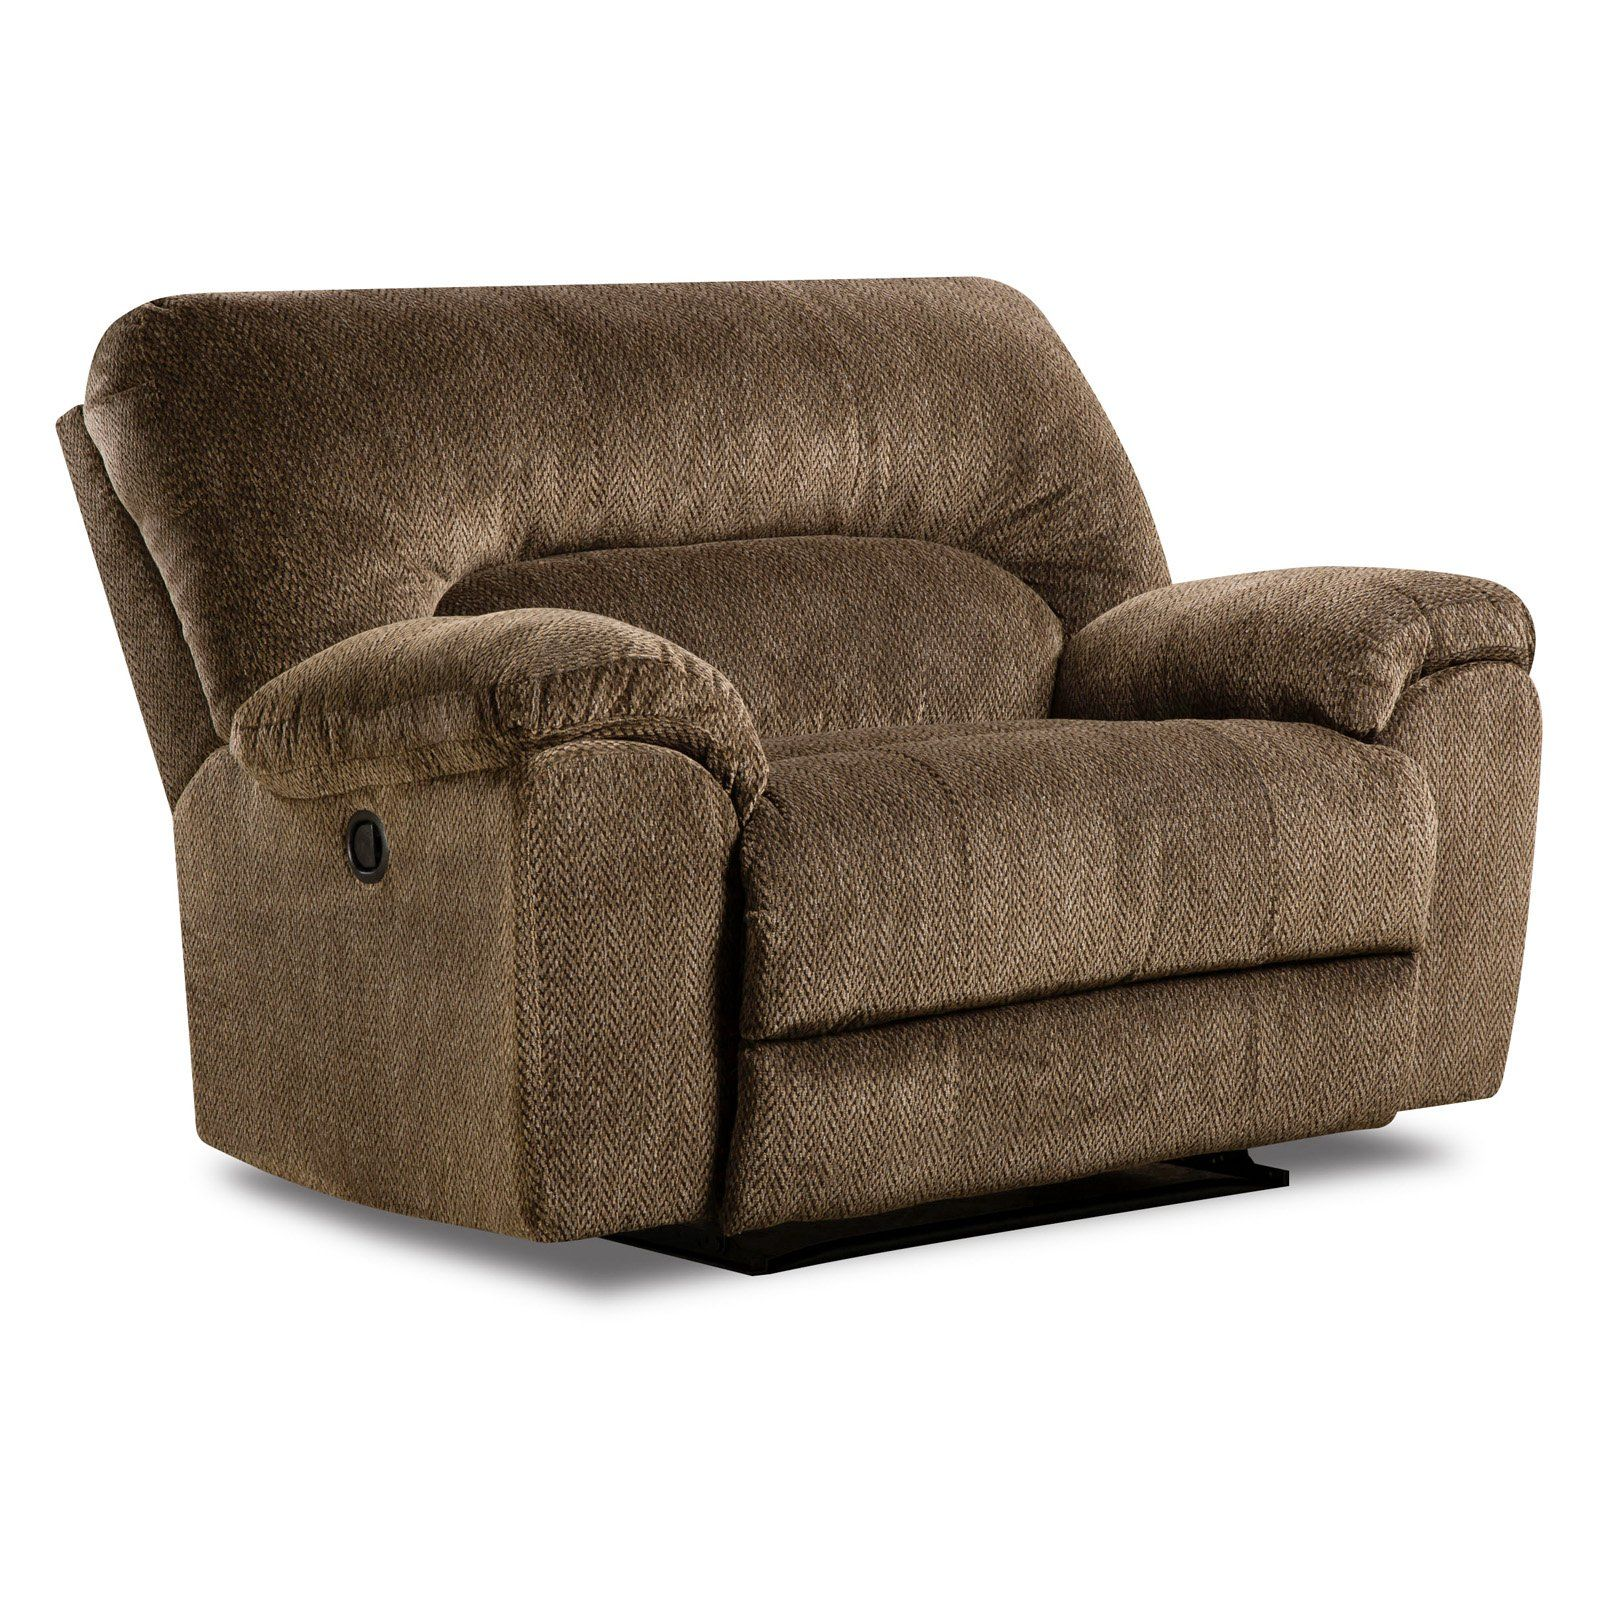 Pin By Yagana Kmallam On Mk In 2020 Recliner Recliner Chair Chair And A Half